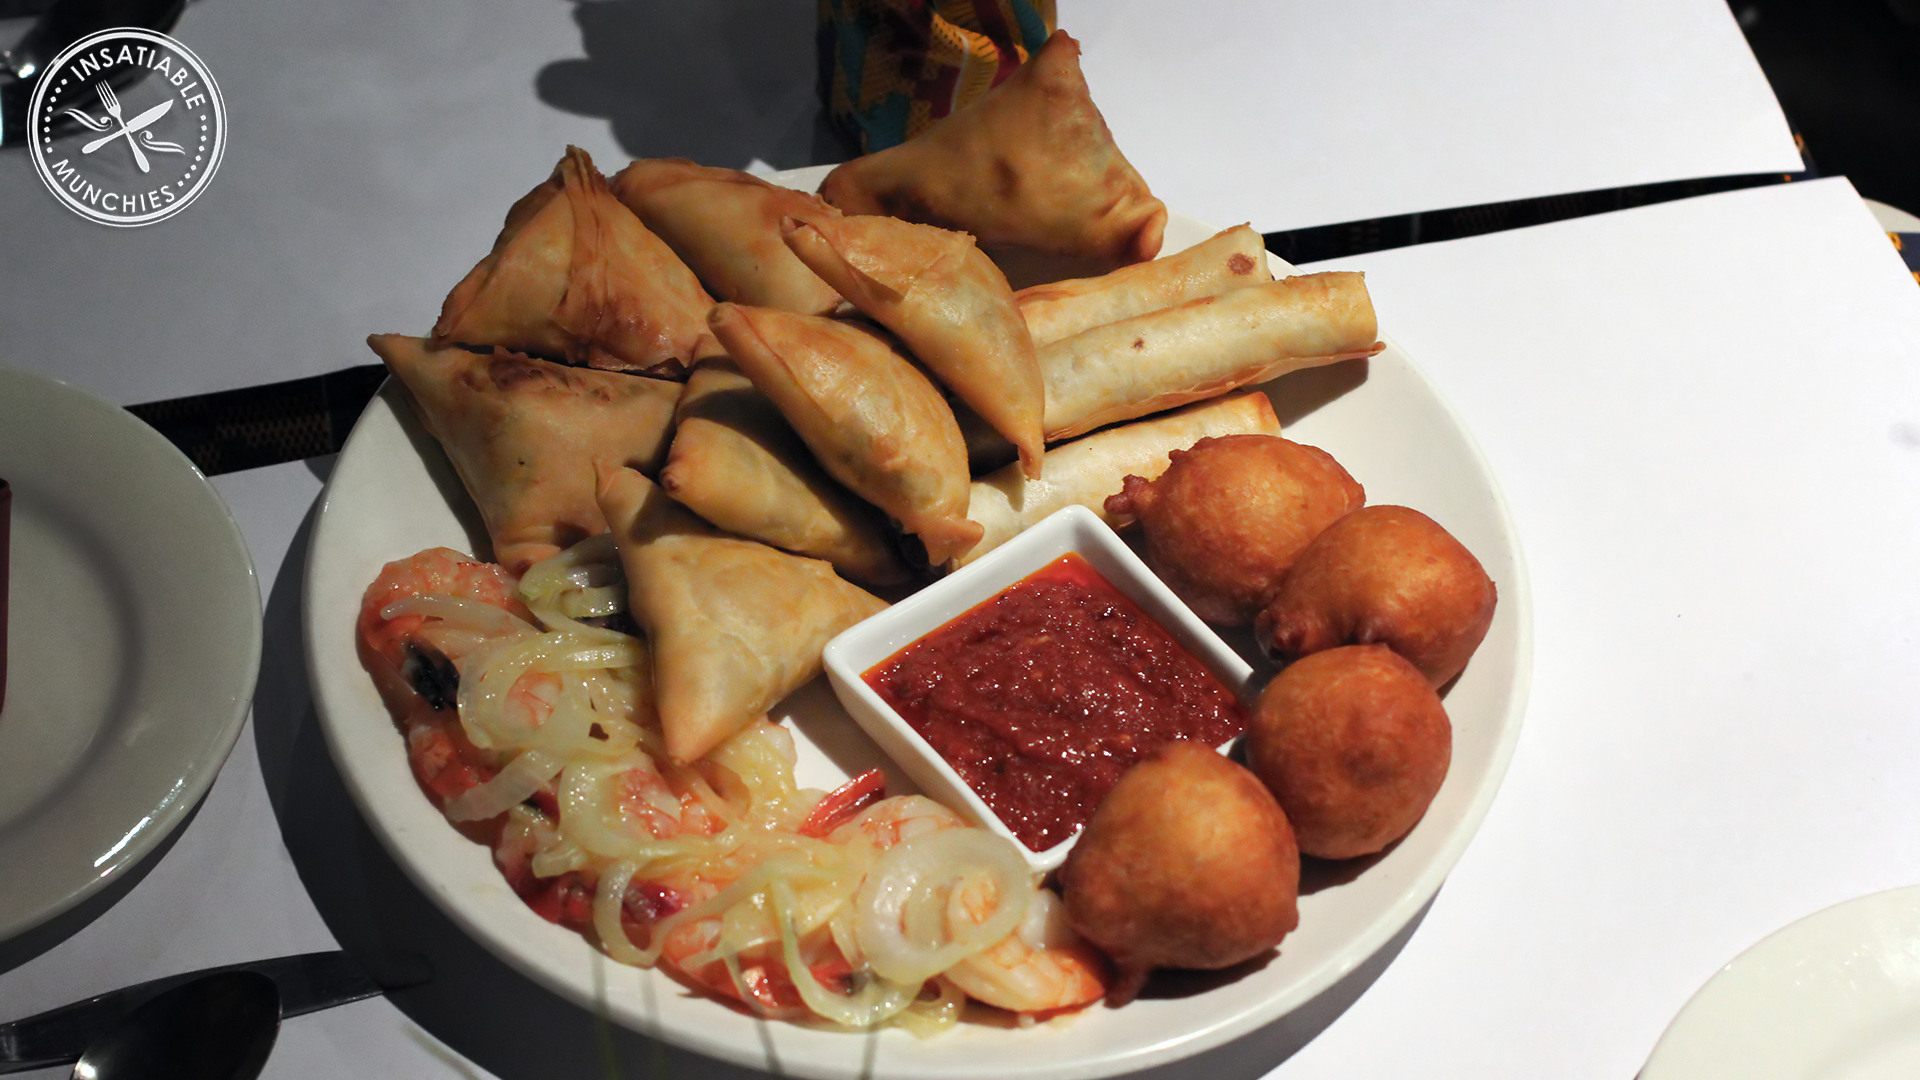 African entree platter, including Vegetable Triangles, Mince Samosas, African Cigars, Kpoff Kpoff (dumplings), and Prawn Onion, with a tomato based dipping sauce.